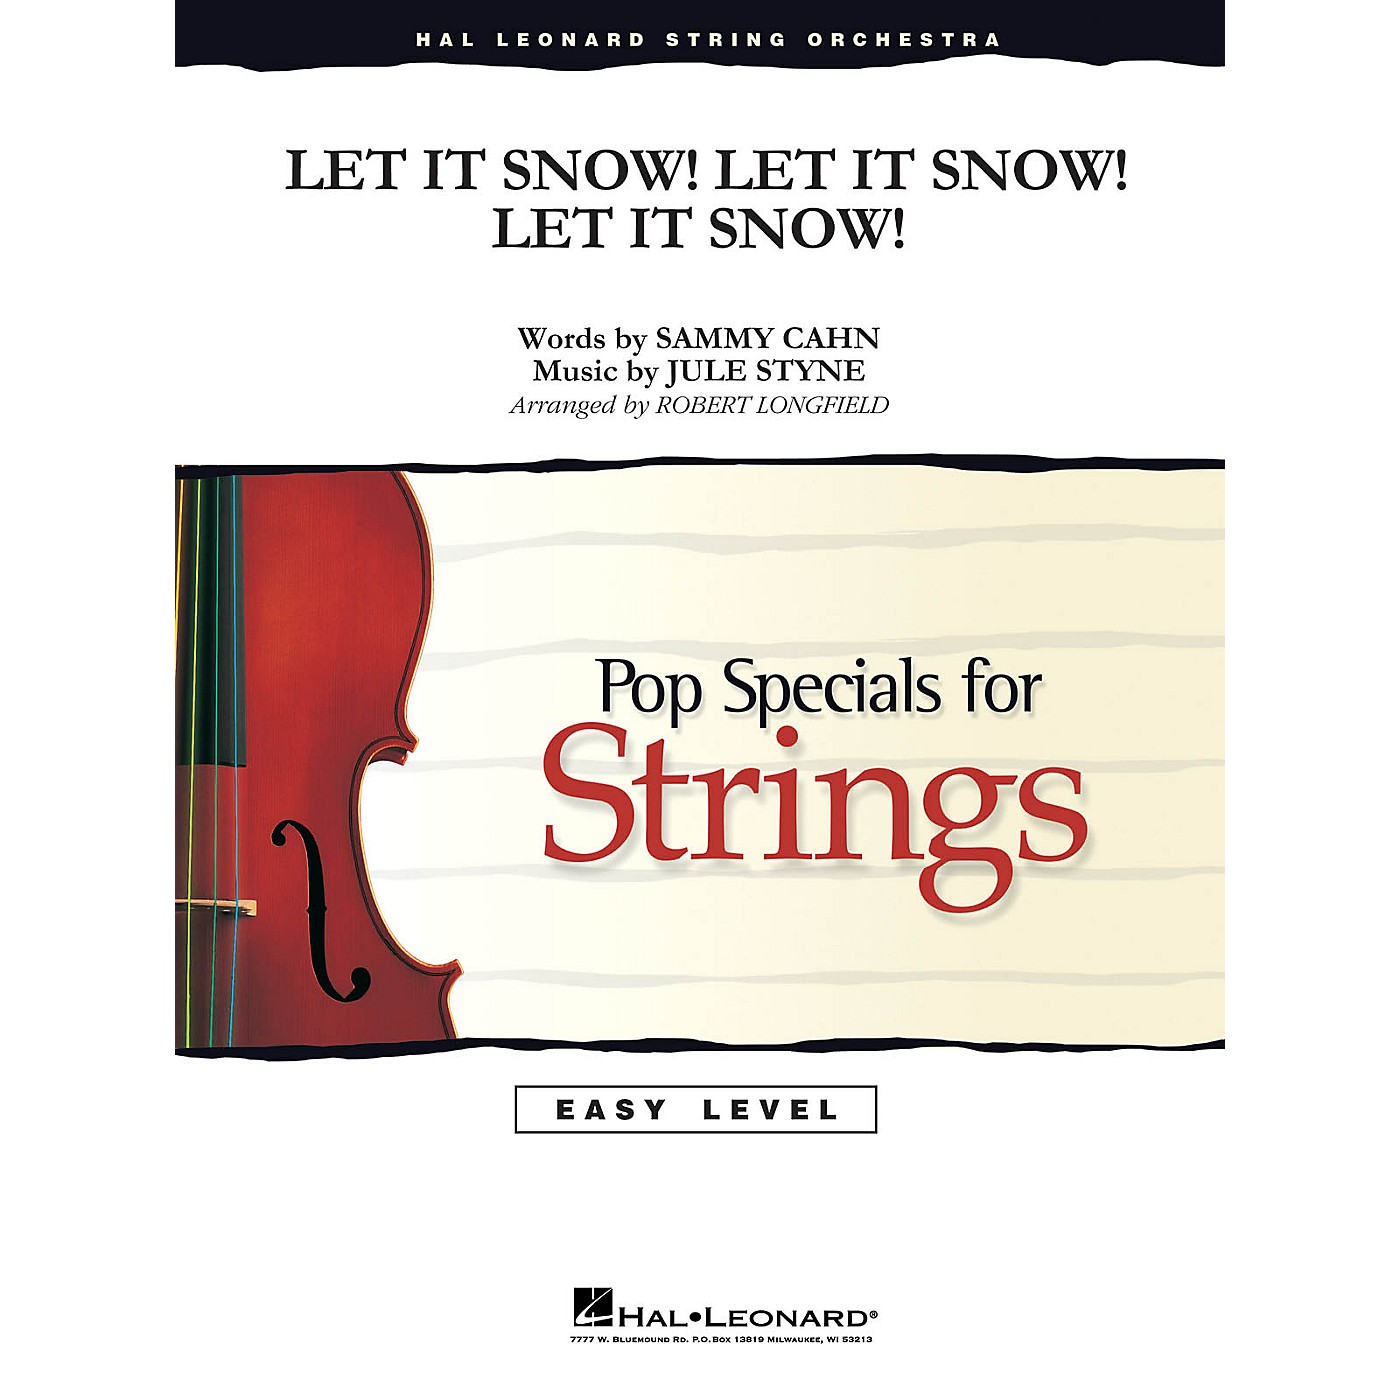 Hal Leonard Let It Snow! Let It Snow! Let It Snow! Easy Pop Specials For Strings Series Softcover by Robert Longfield thumbnail